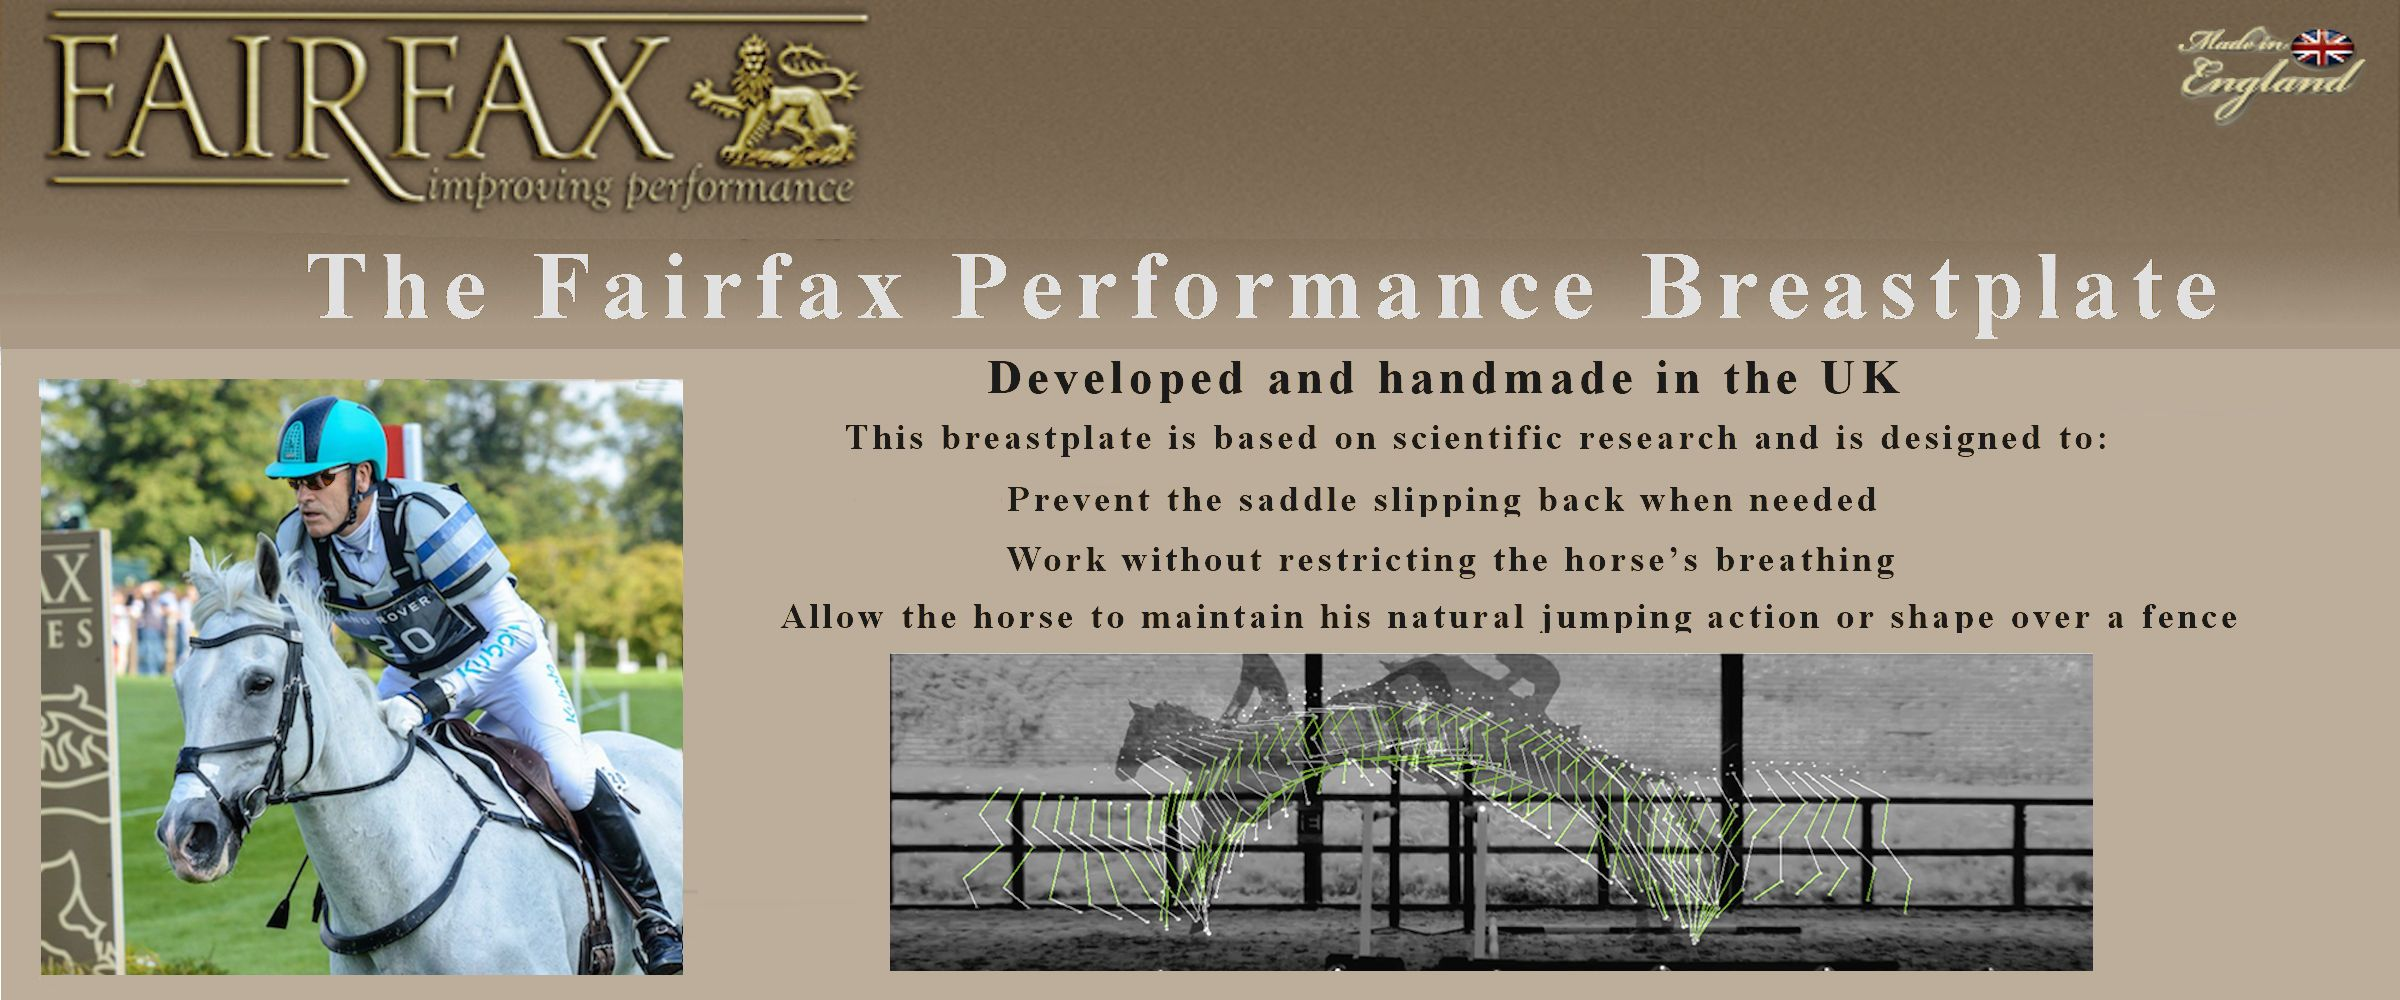 fairfax performance breastplate